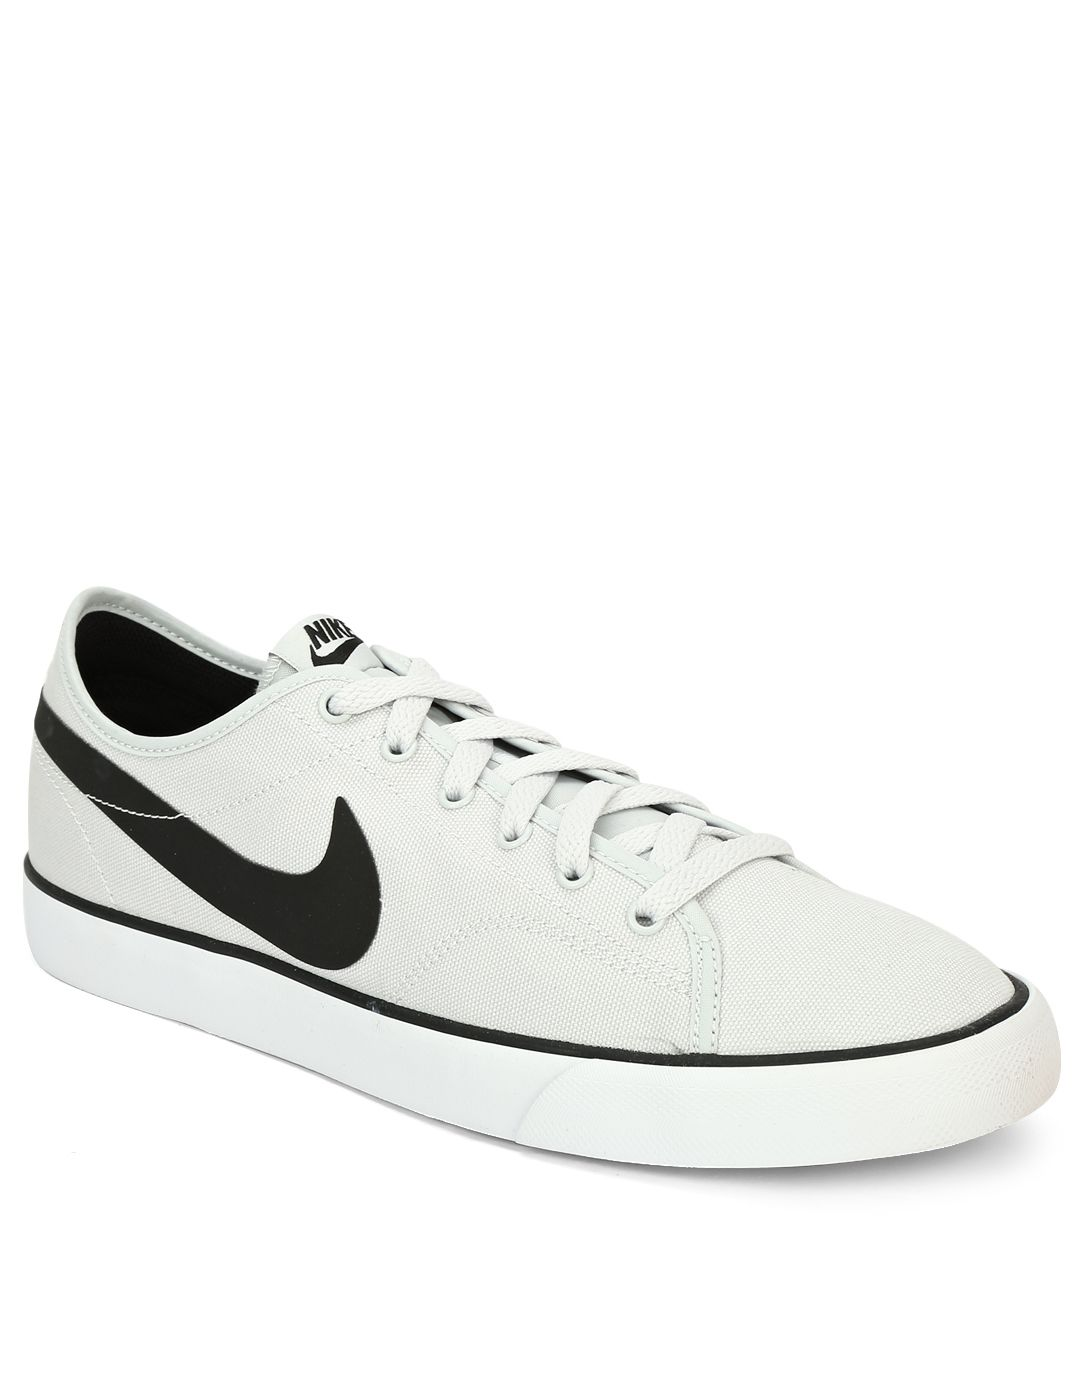 Nike Primo Court White Casual Shoes - Buy Nike Primo Court ...